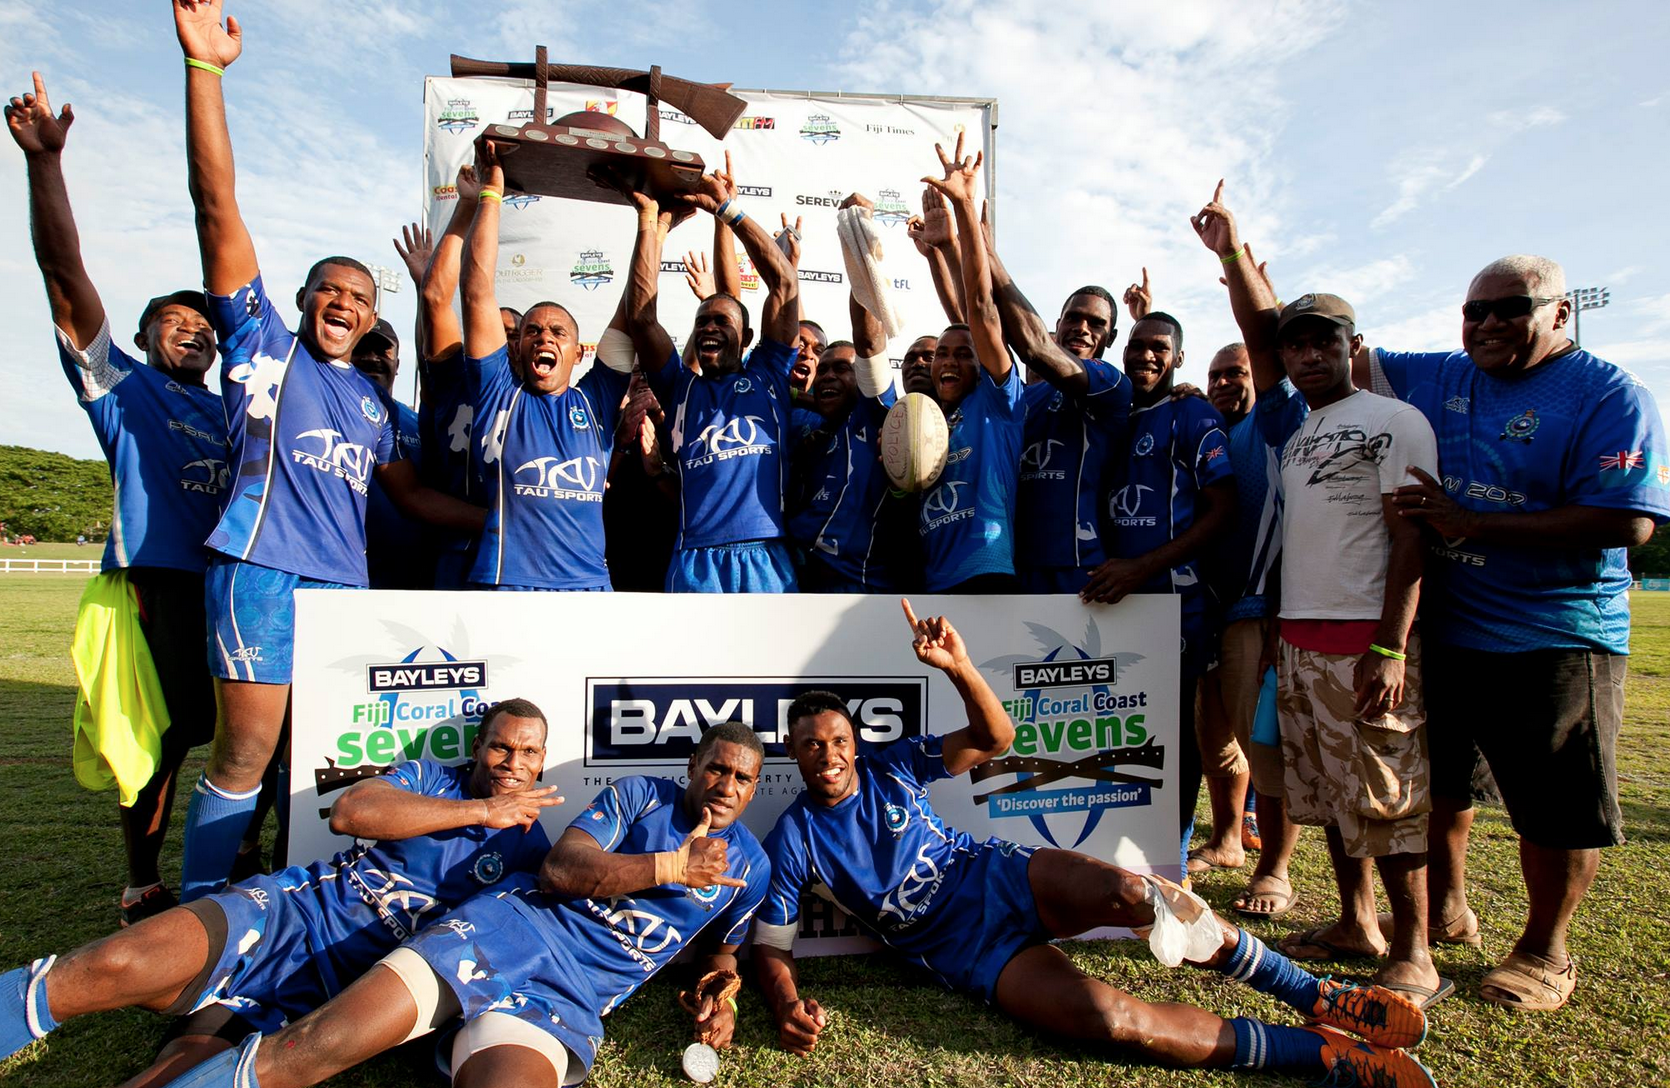 The Fiji Sevens team is one of the most successful rugby sevens teams in the world.